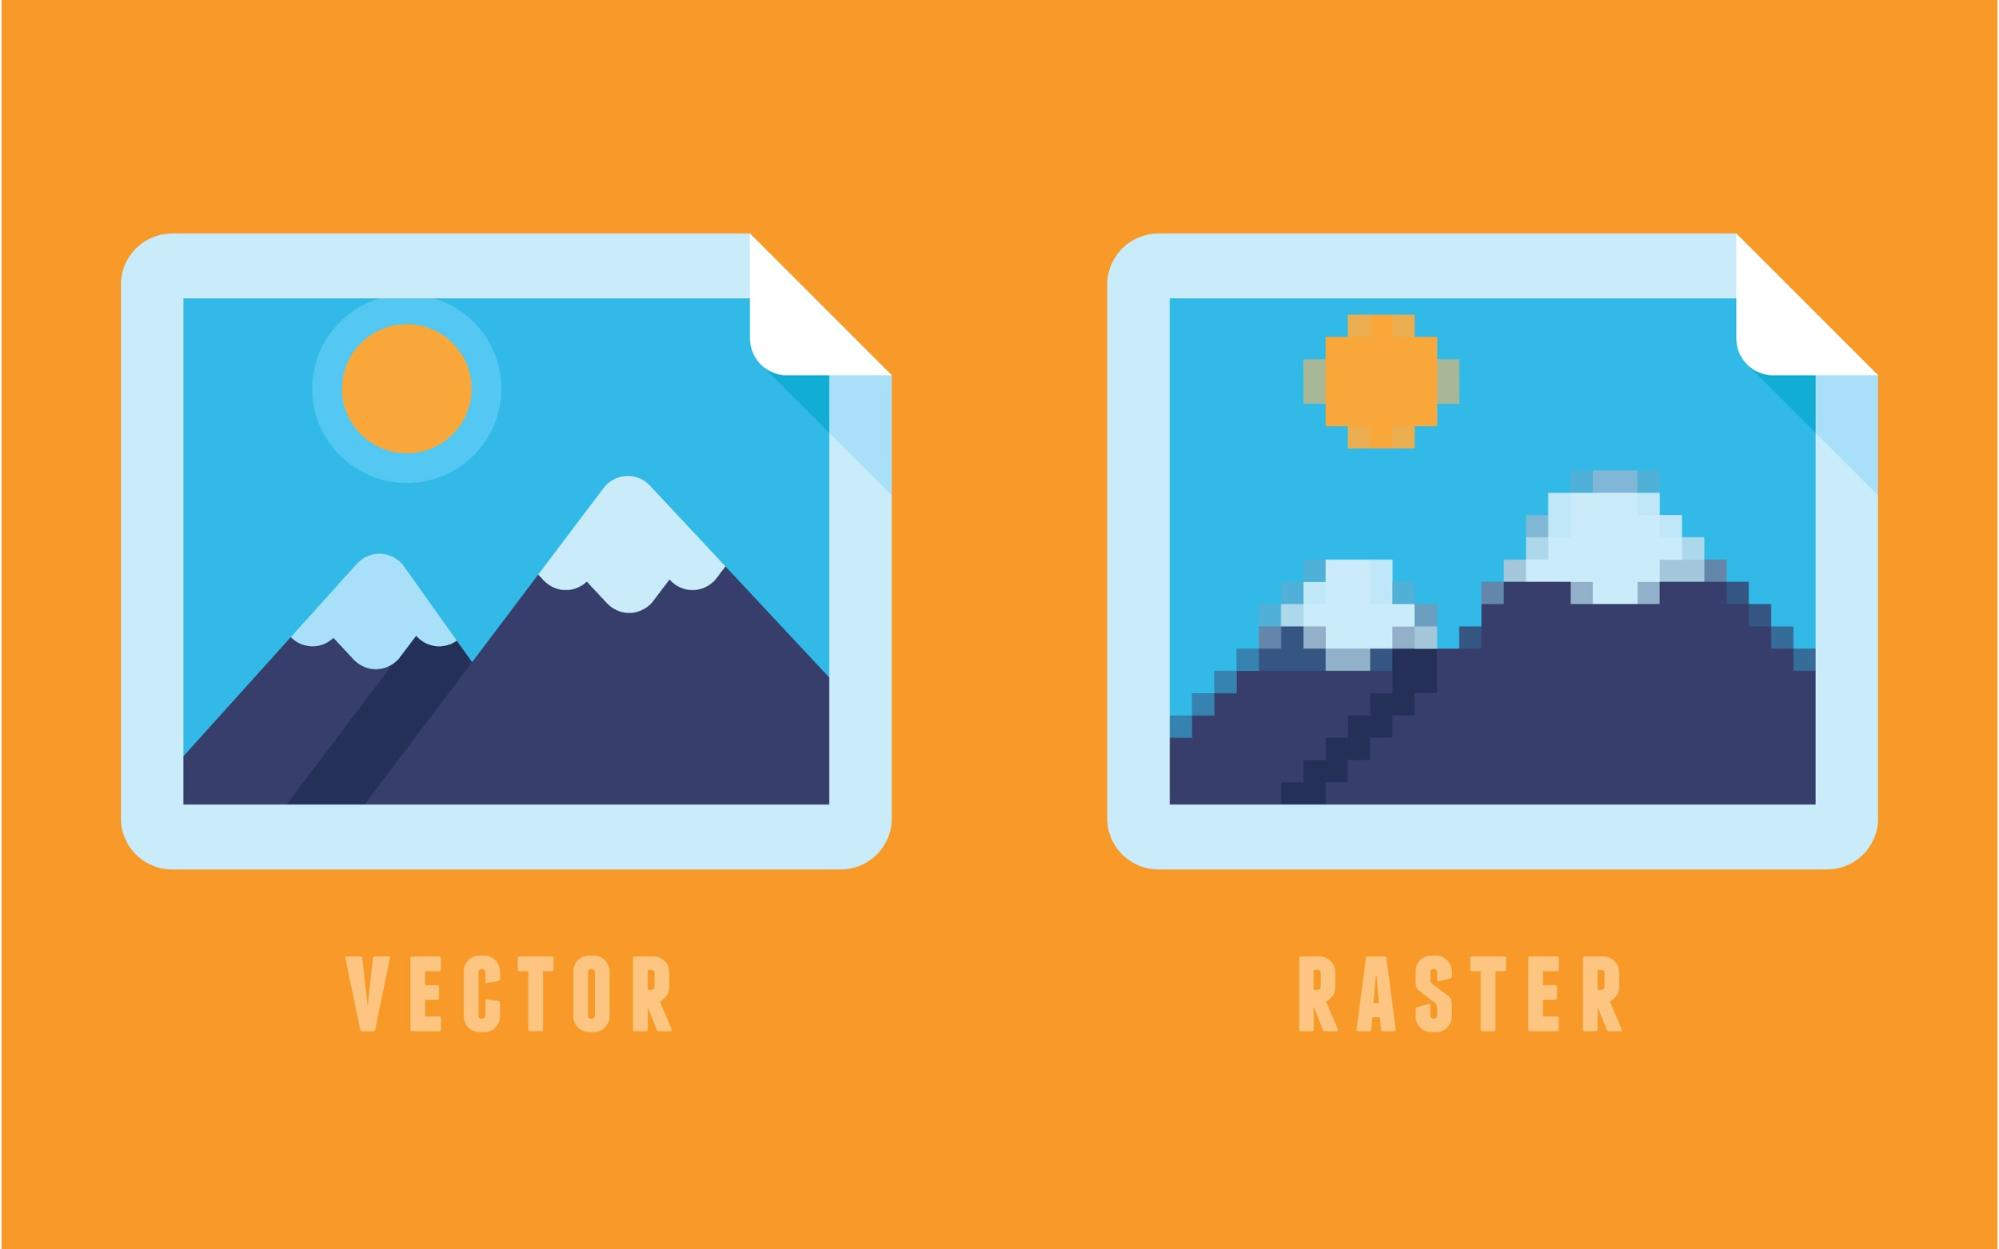 Two graphics side by side, one of a crisp vector image, the other a pixelated raster image